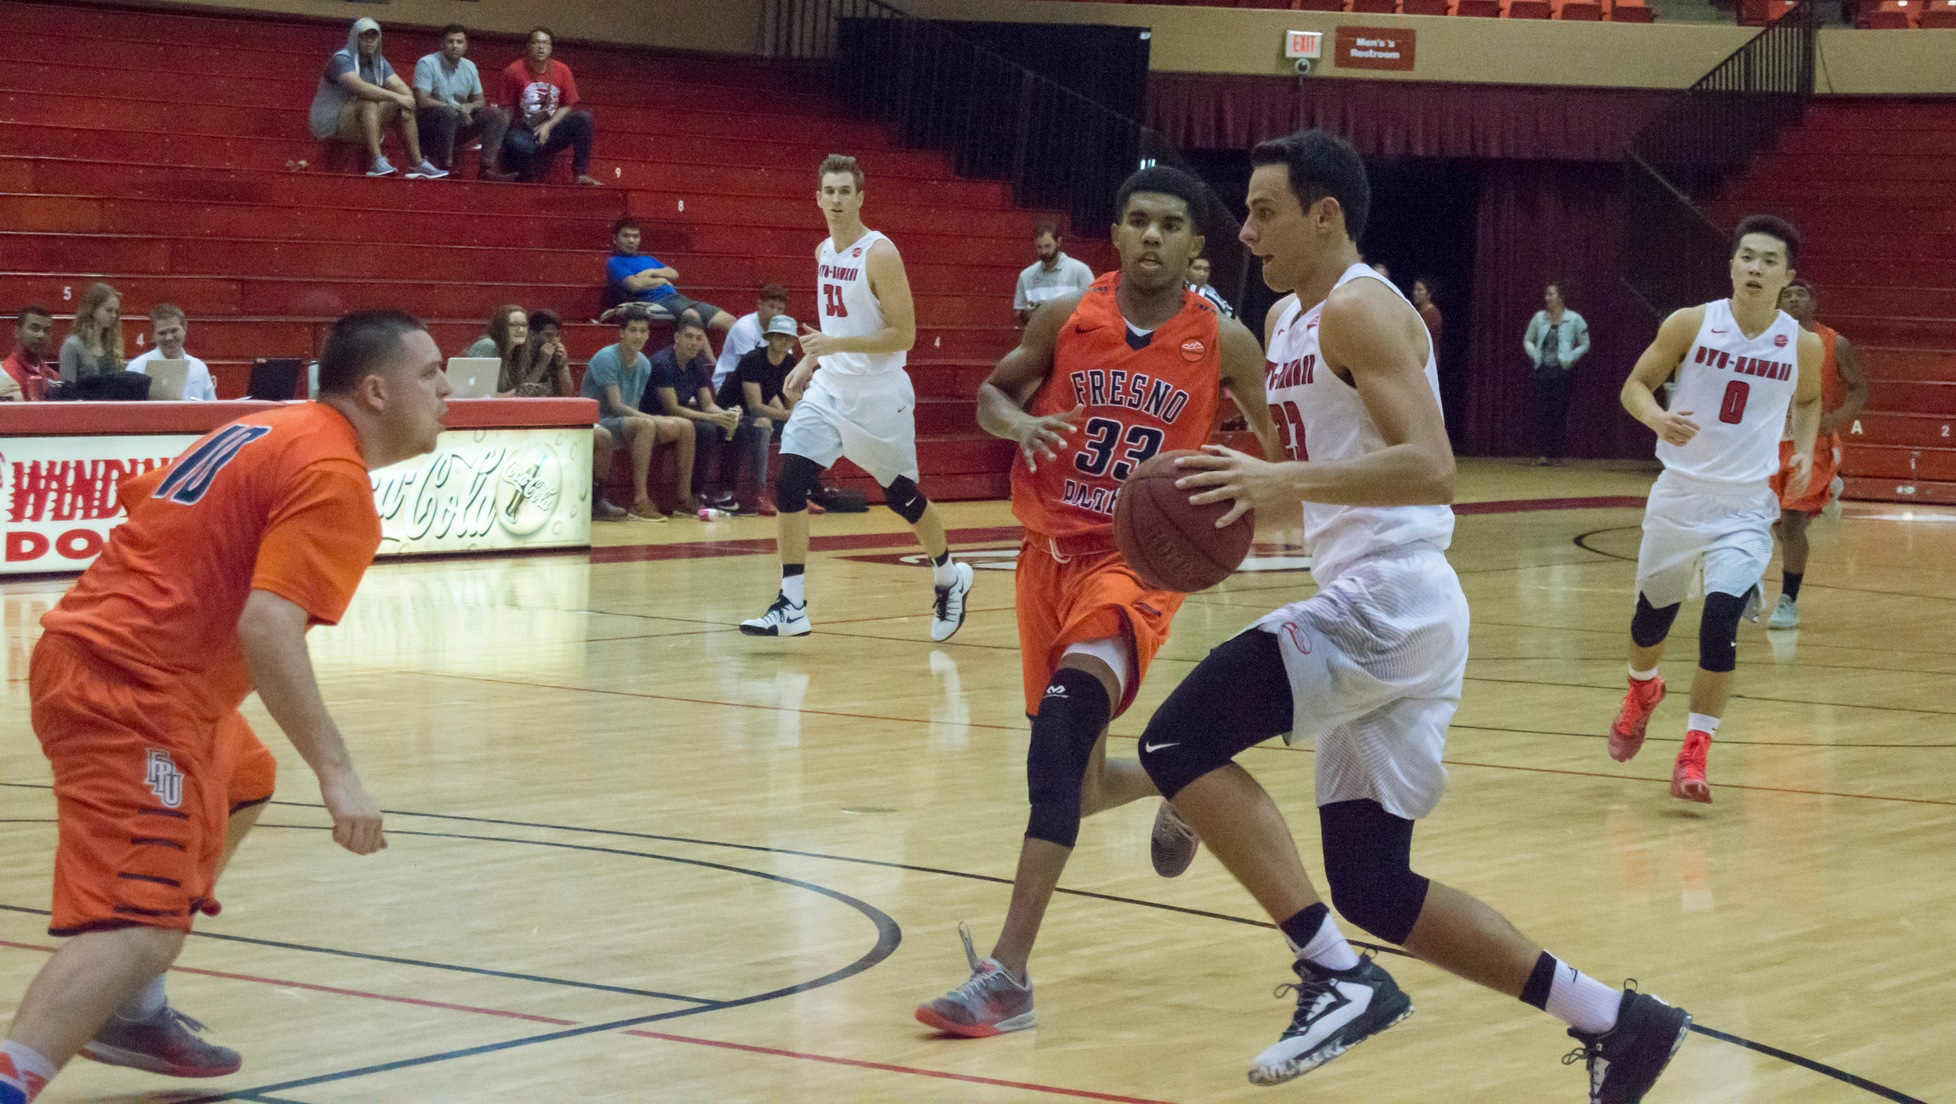 Caeleb Roney drives the lane in the second half against Fresno Pacific.